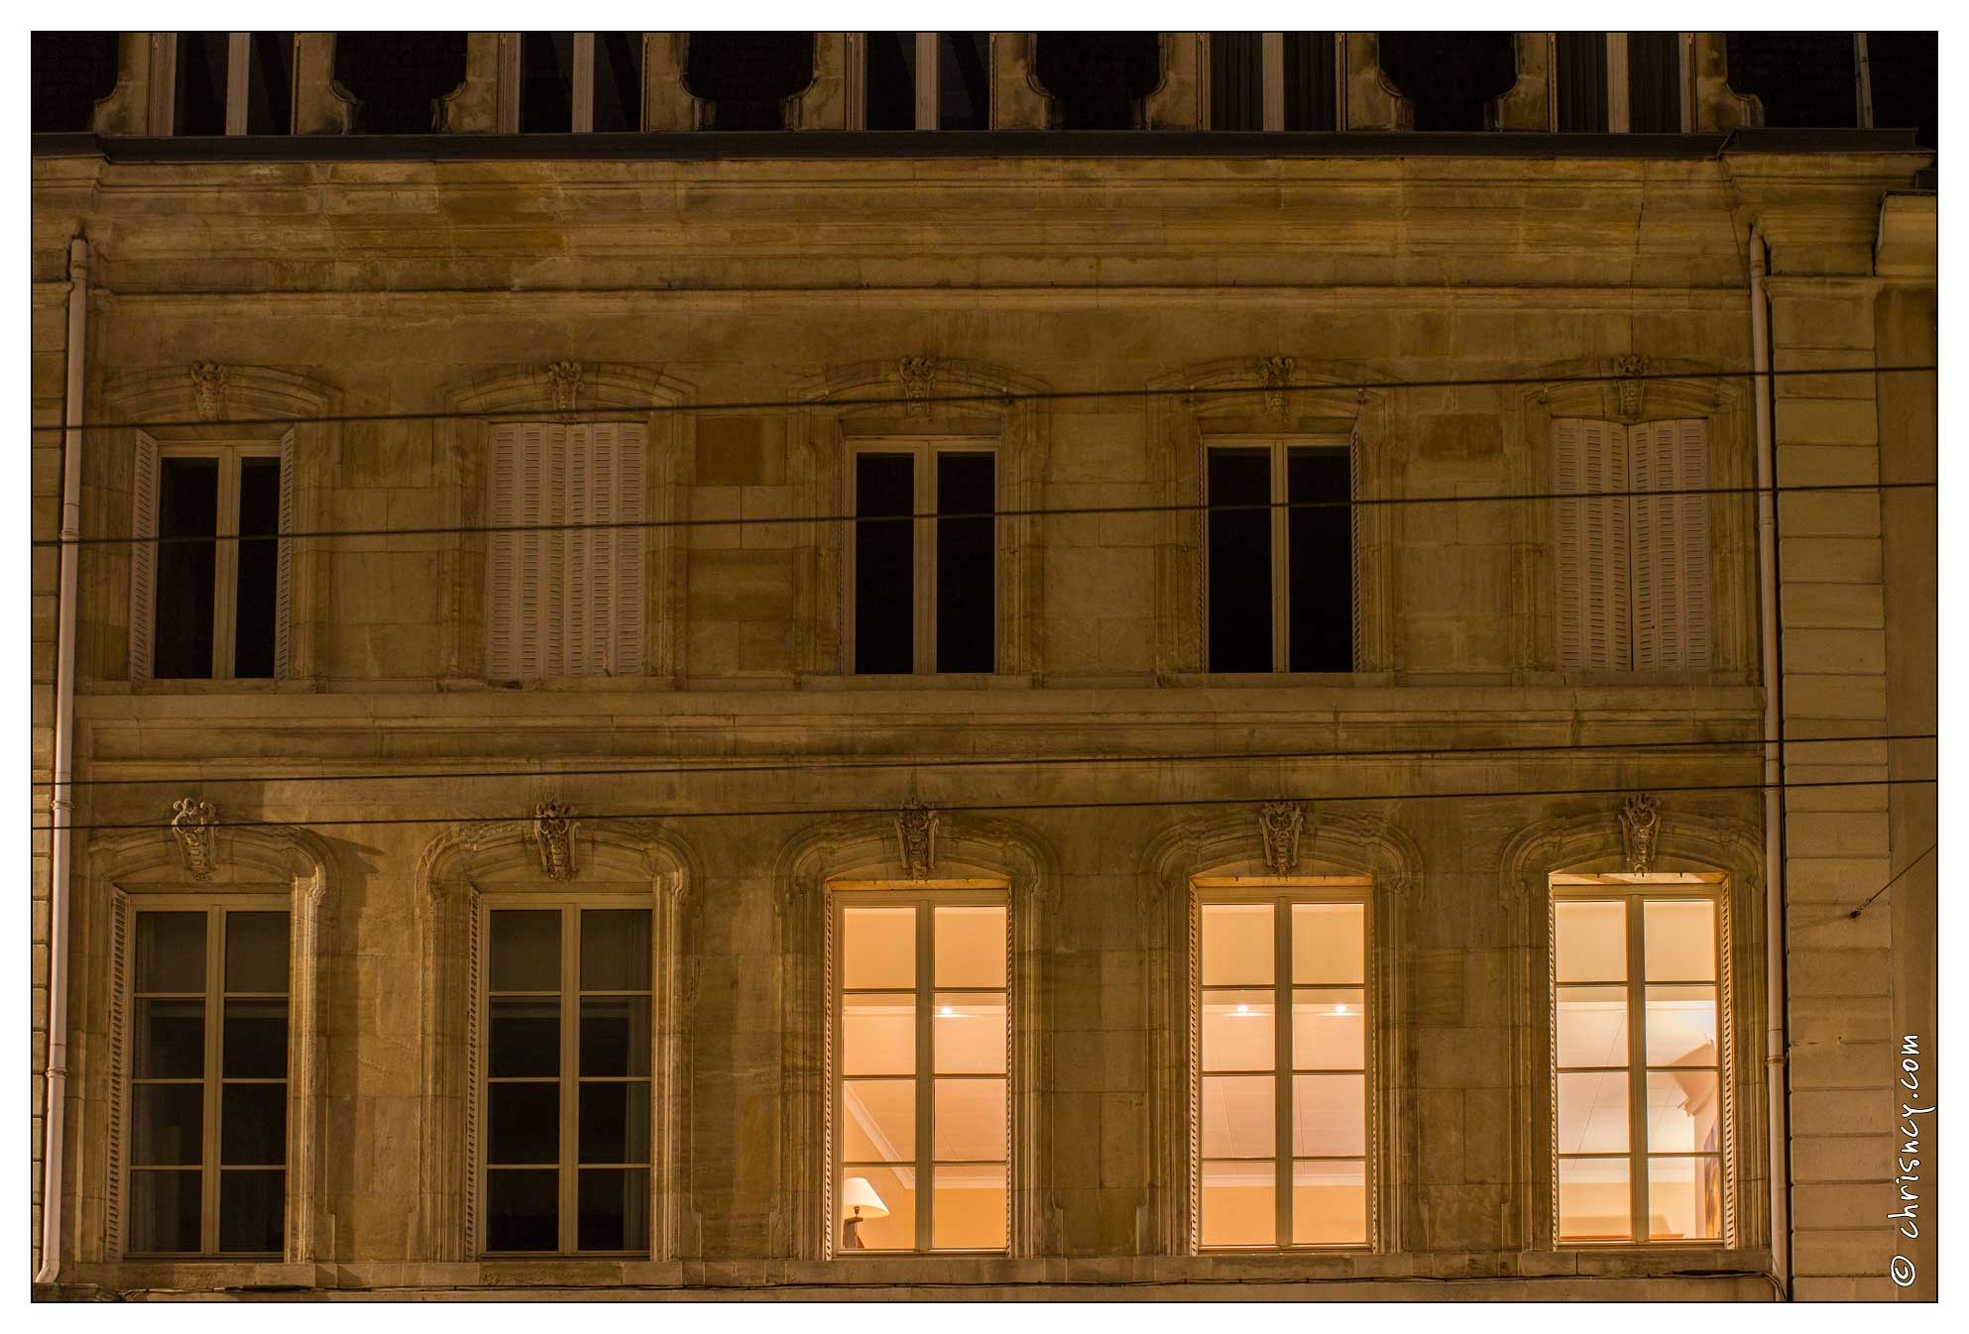 20110305-3064-Nancy_nuit.jpg